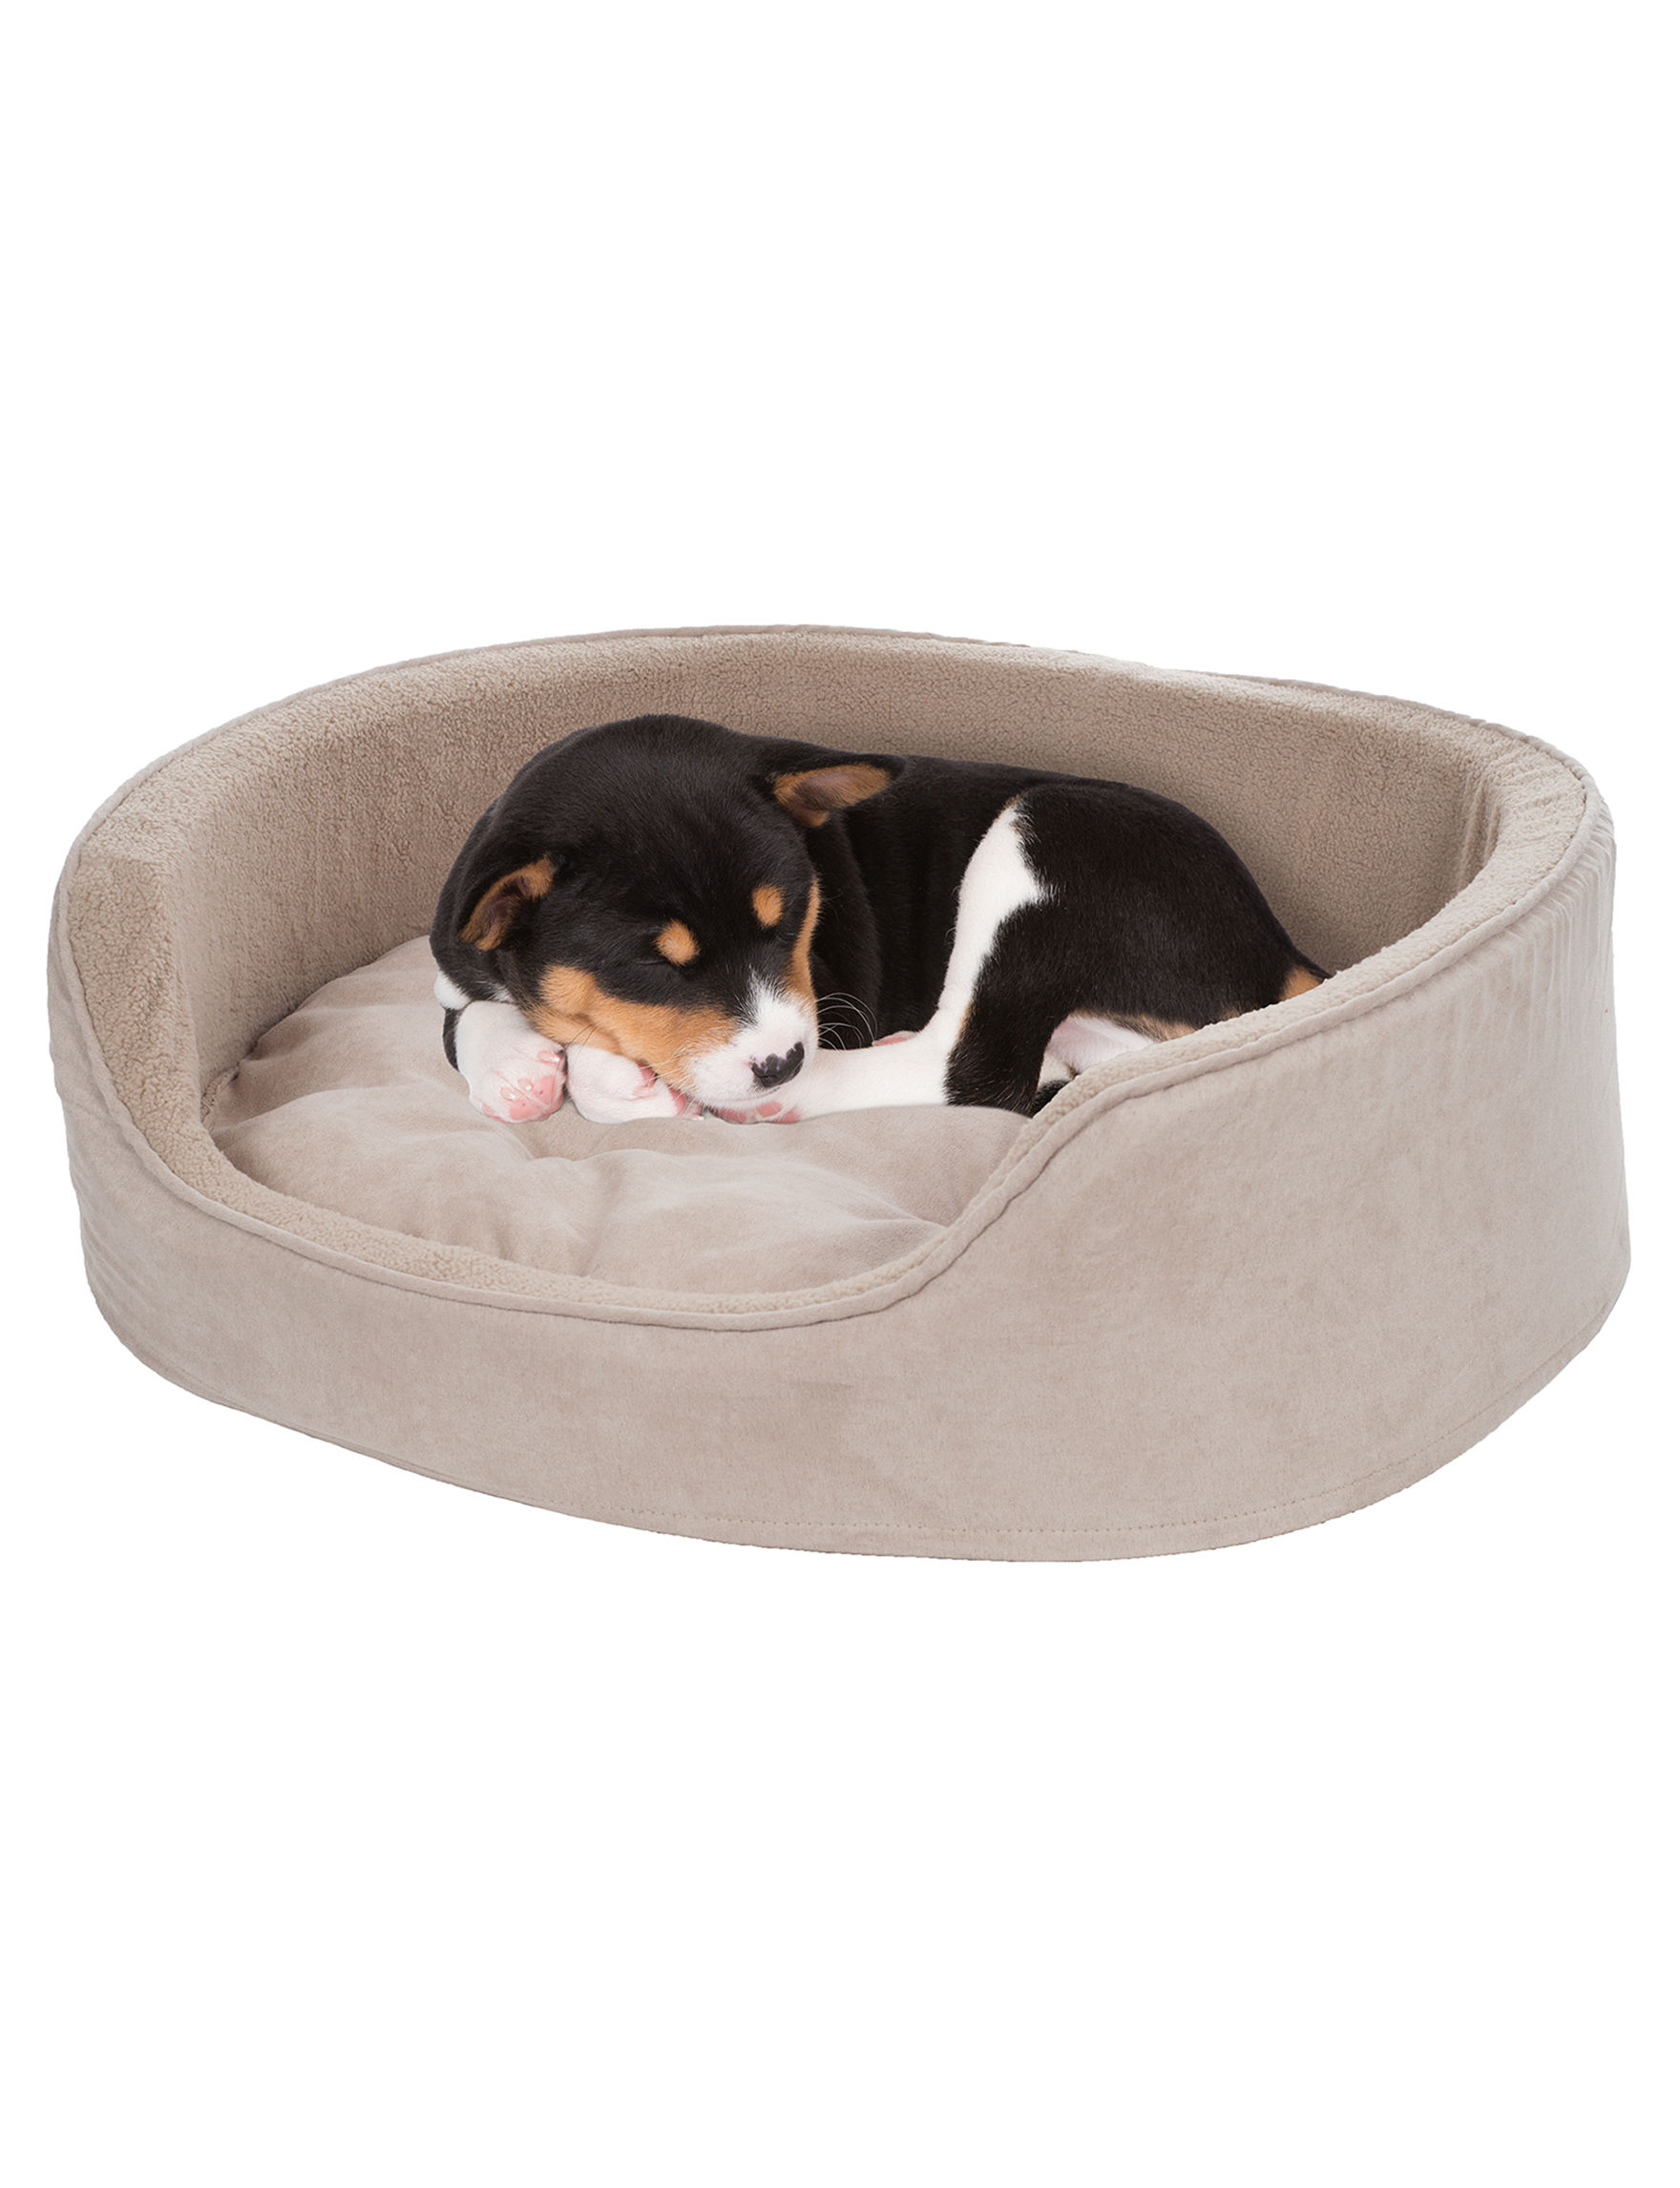 Trademark Global  Accessories Pet Beds & Houses